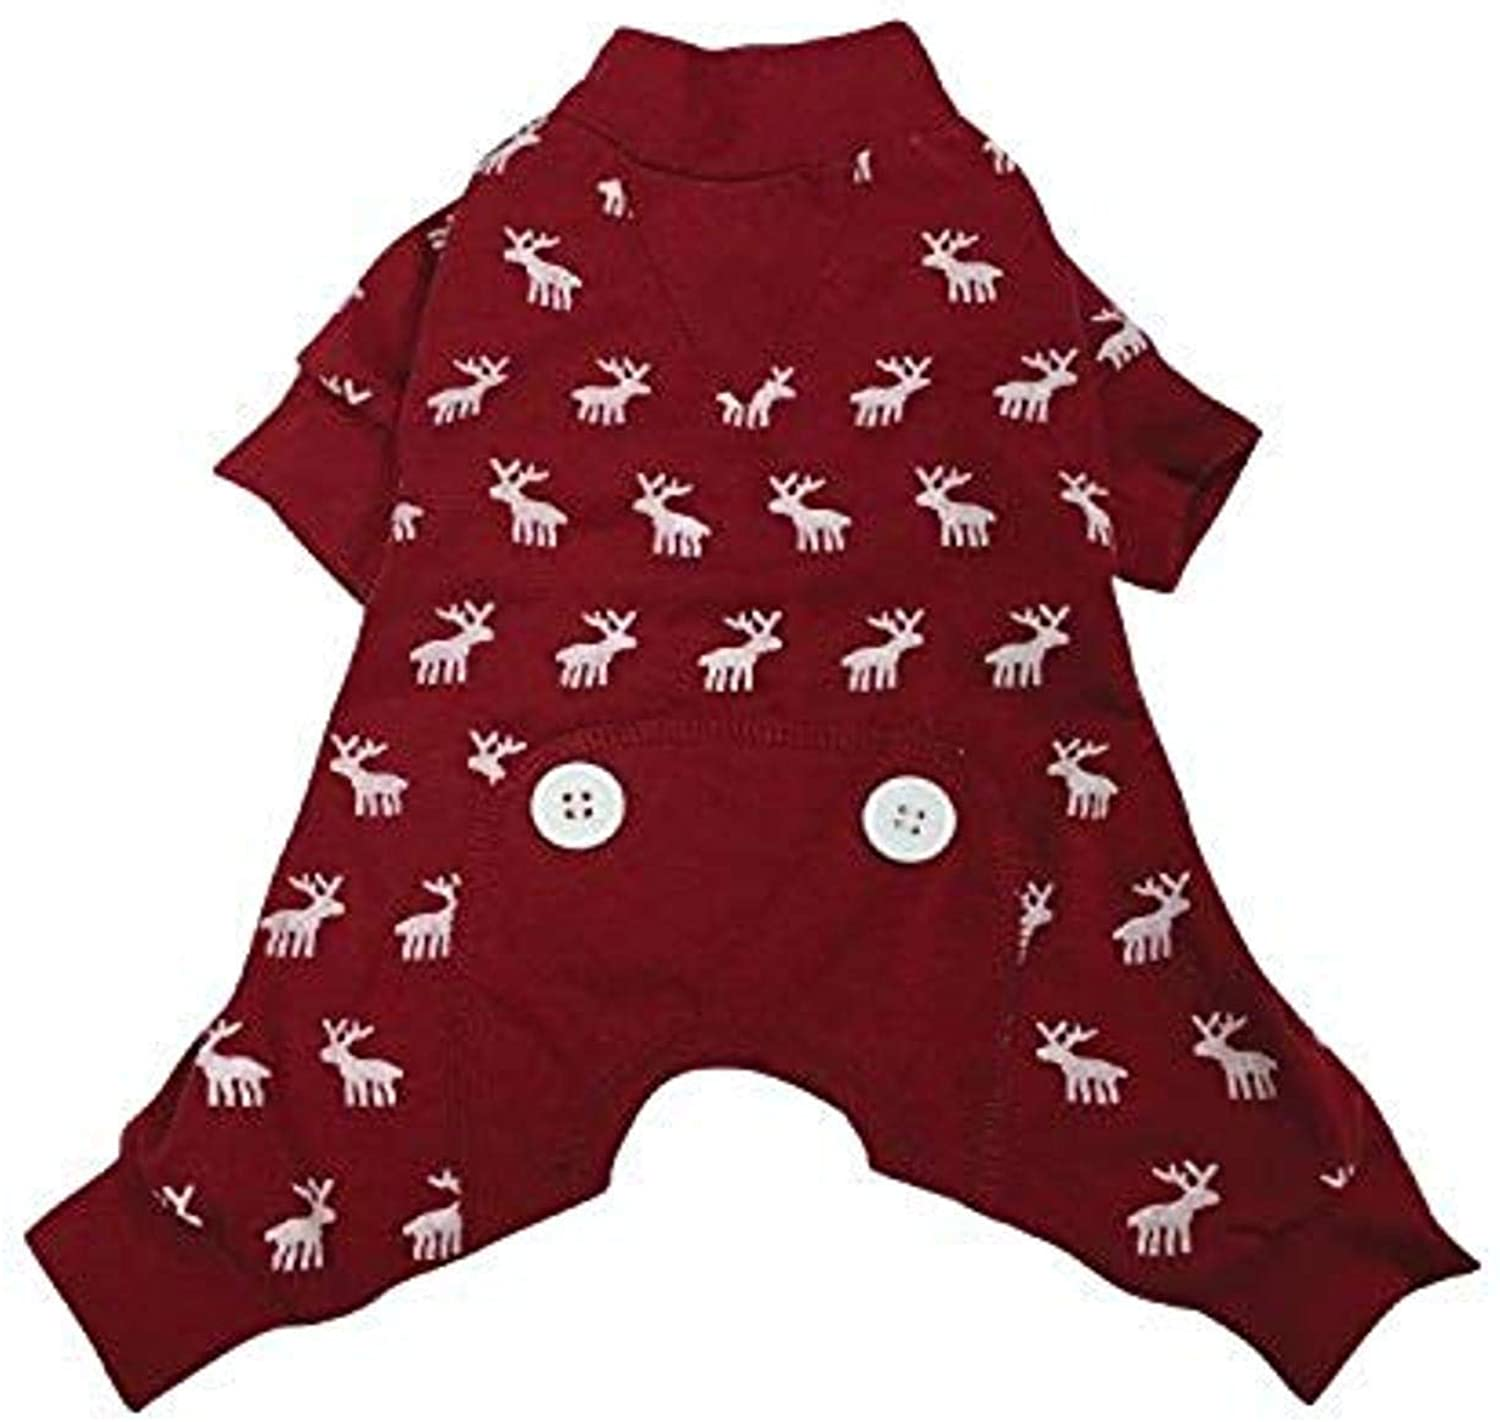 Foufou Dog Moose Pajamas